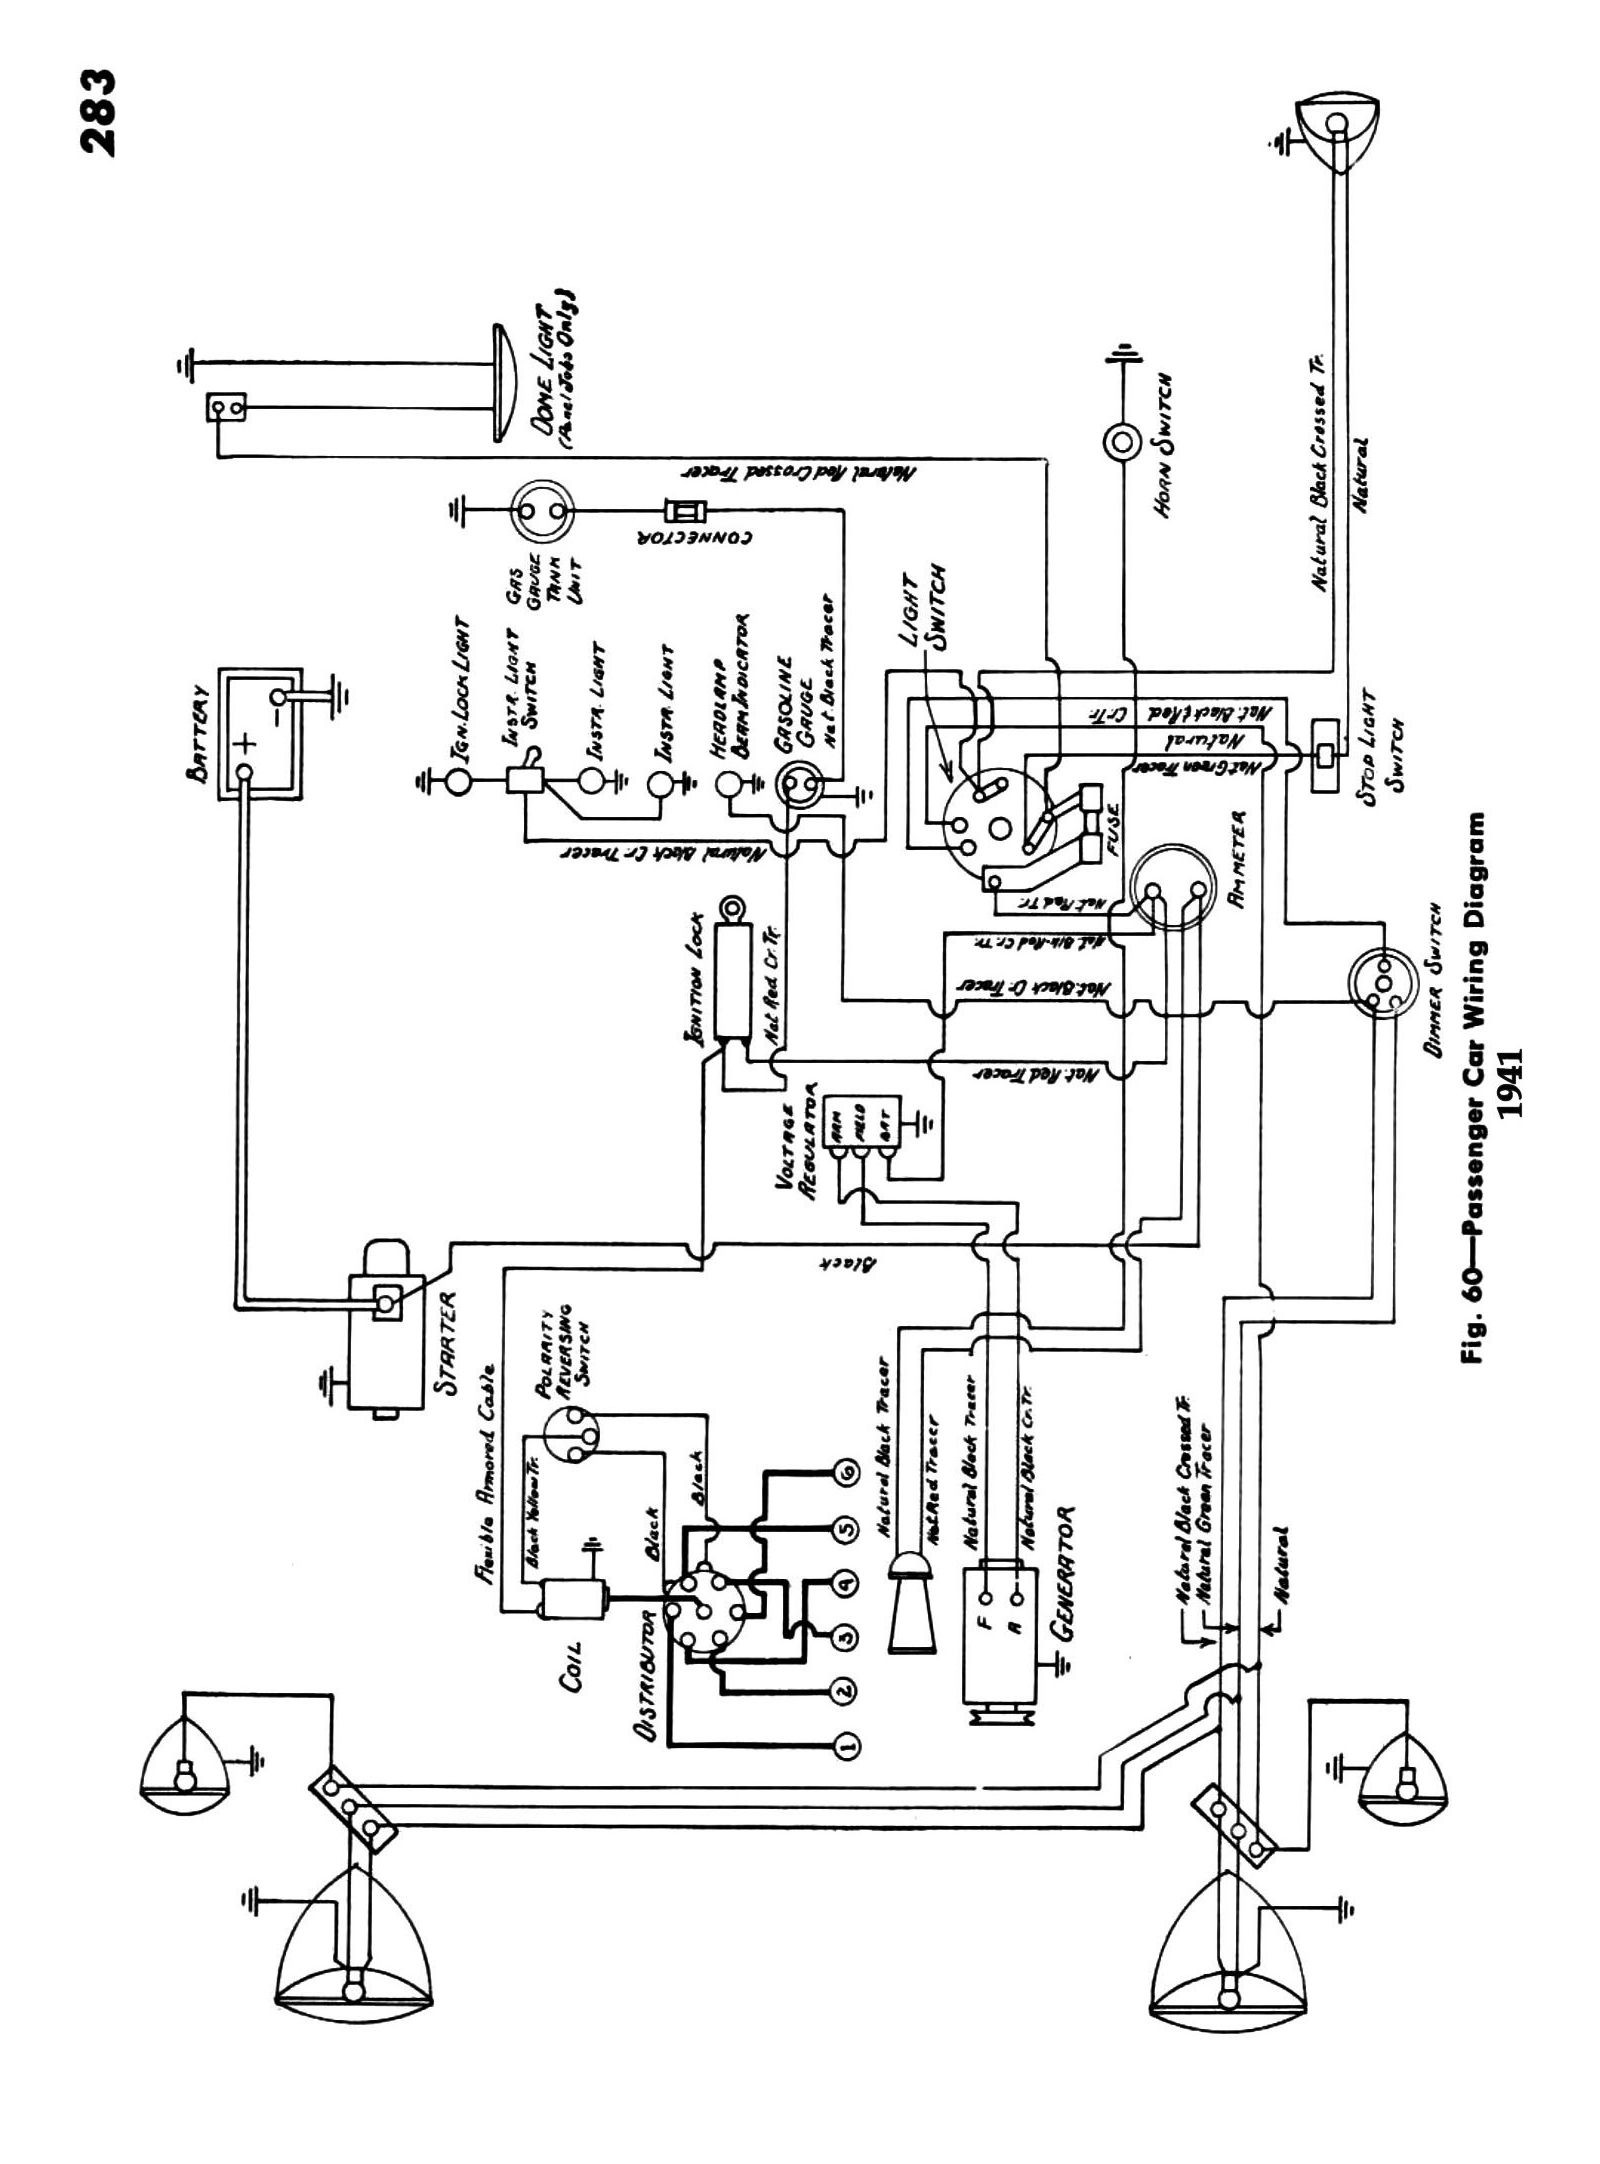 86 chevy fuse diagram 87 chevy fuse diagram